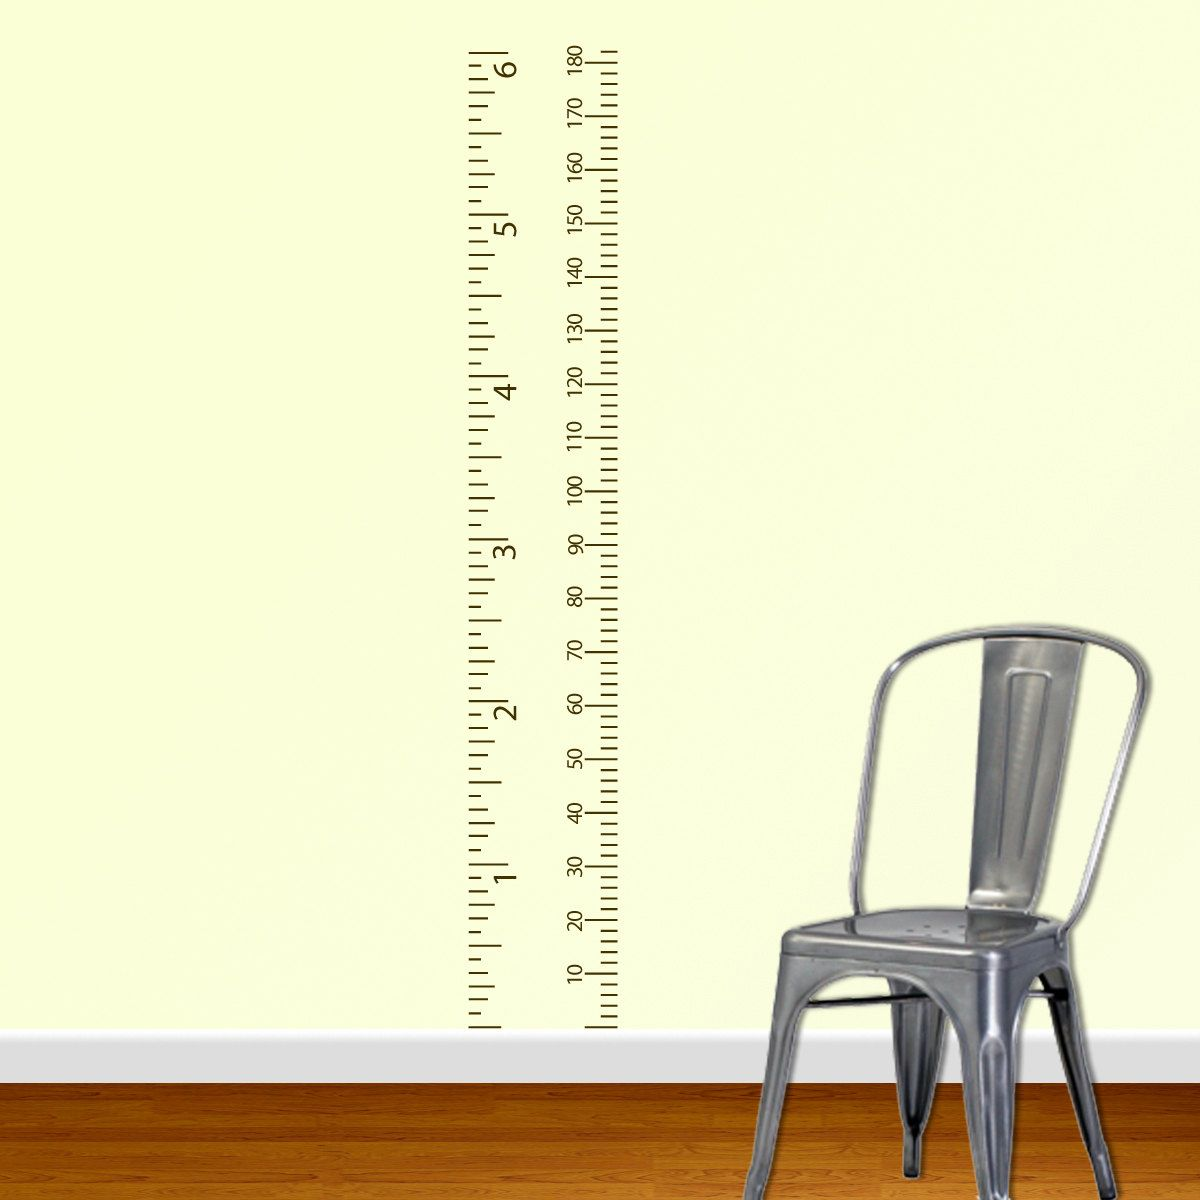 Metric Growth Chart Wall Decal Measurement Chart Child Growth - Ruler growth chart vinyl decal